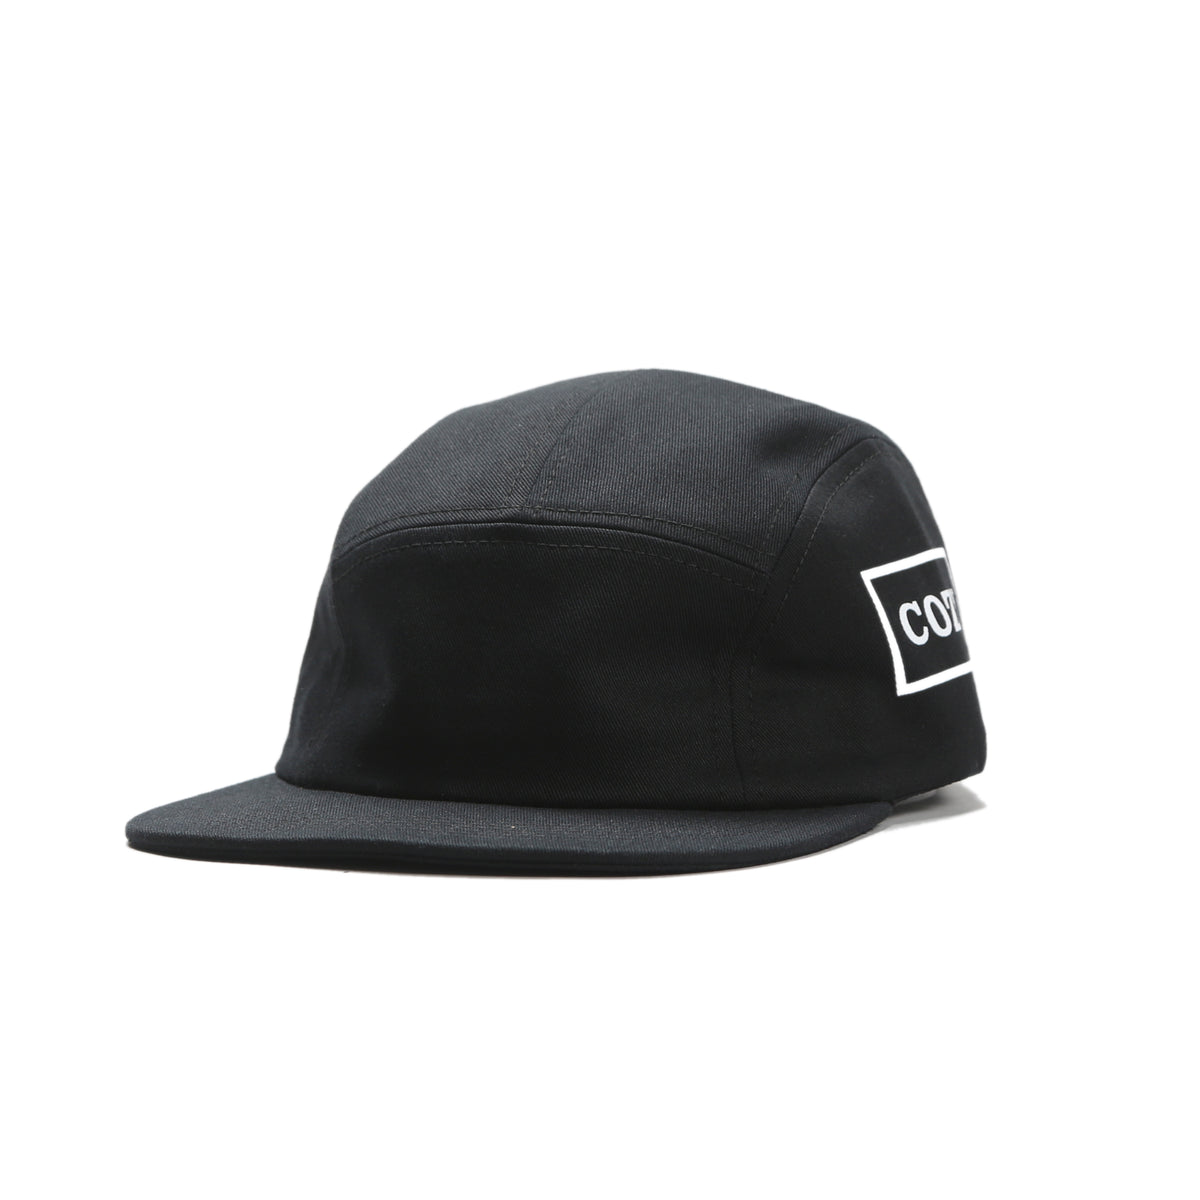 The Champ Cap - Black